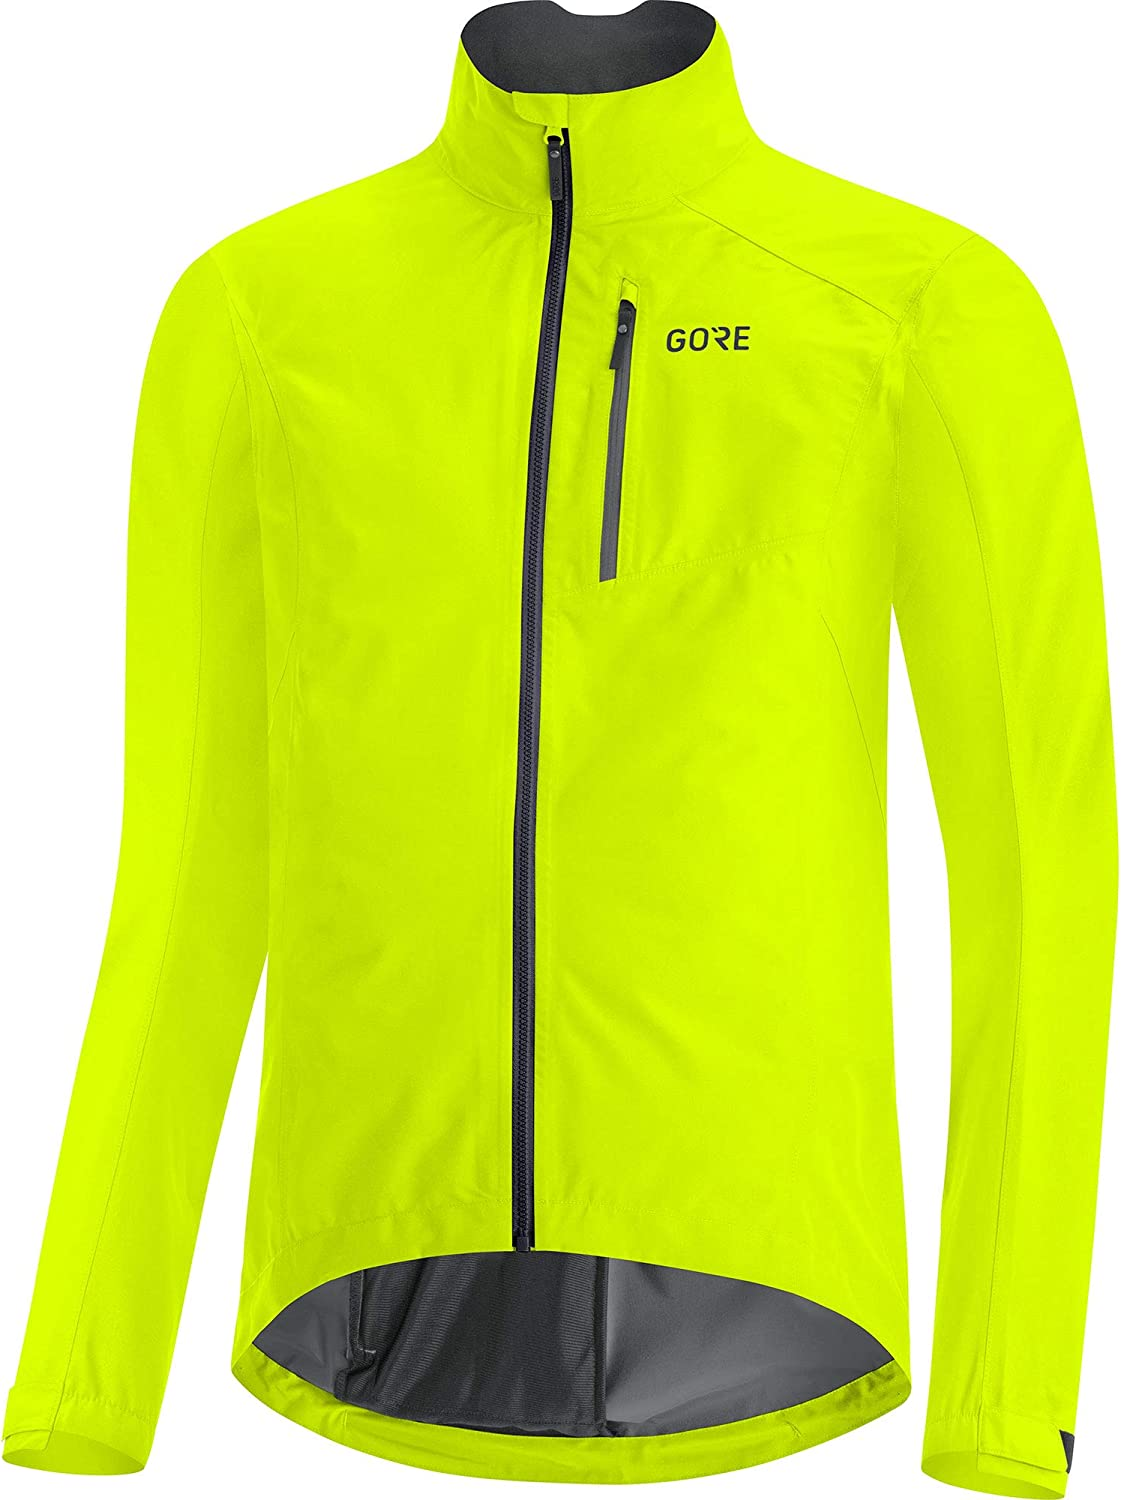 GORE WEAR Men's Cycling Very popular Jacket Gore-TEX Paclite Ranking TOP10